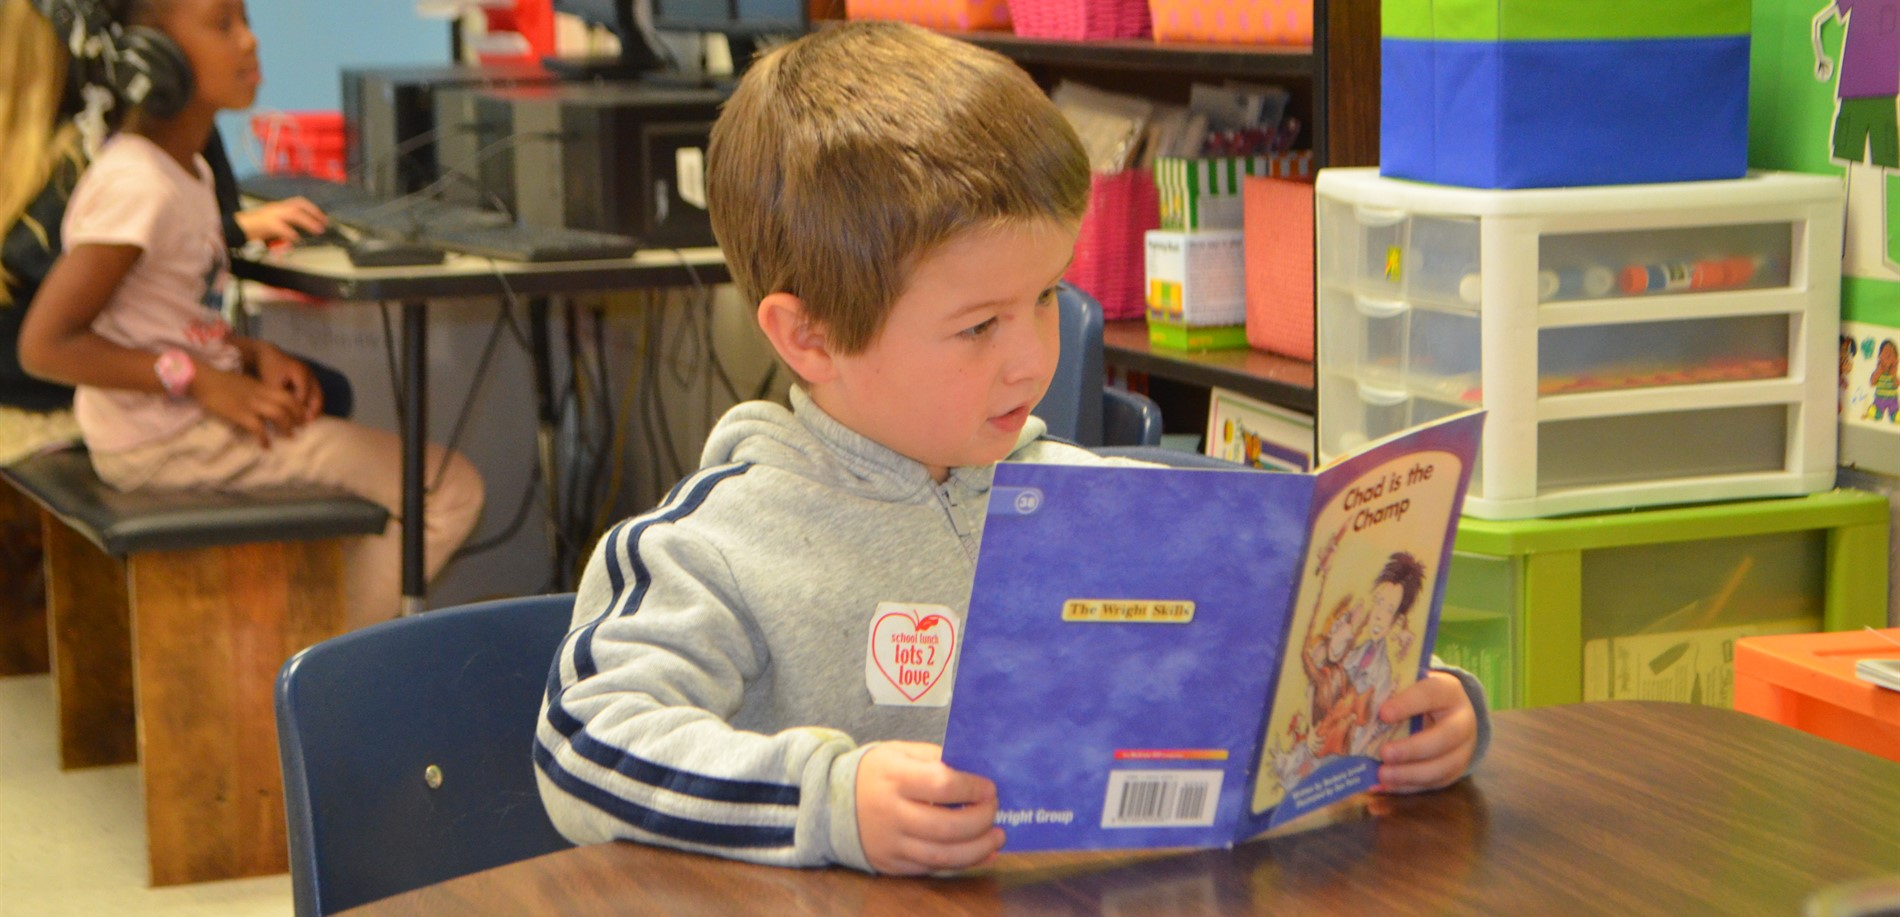 This New Highland Elementary School student is having a great time reading.